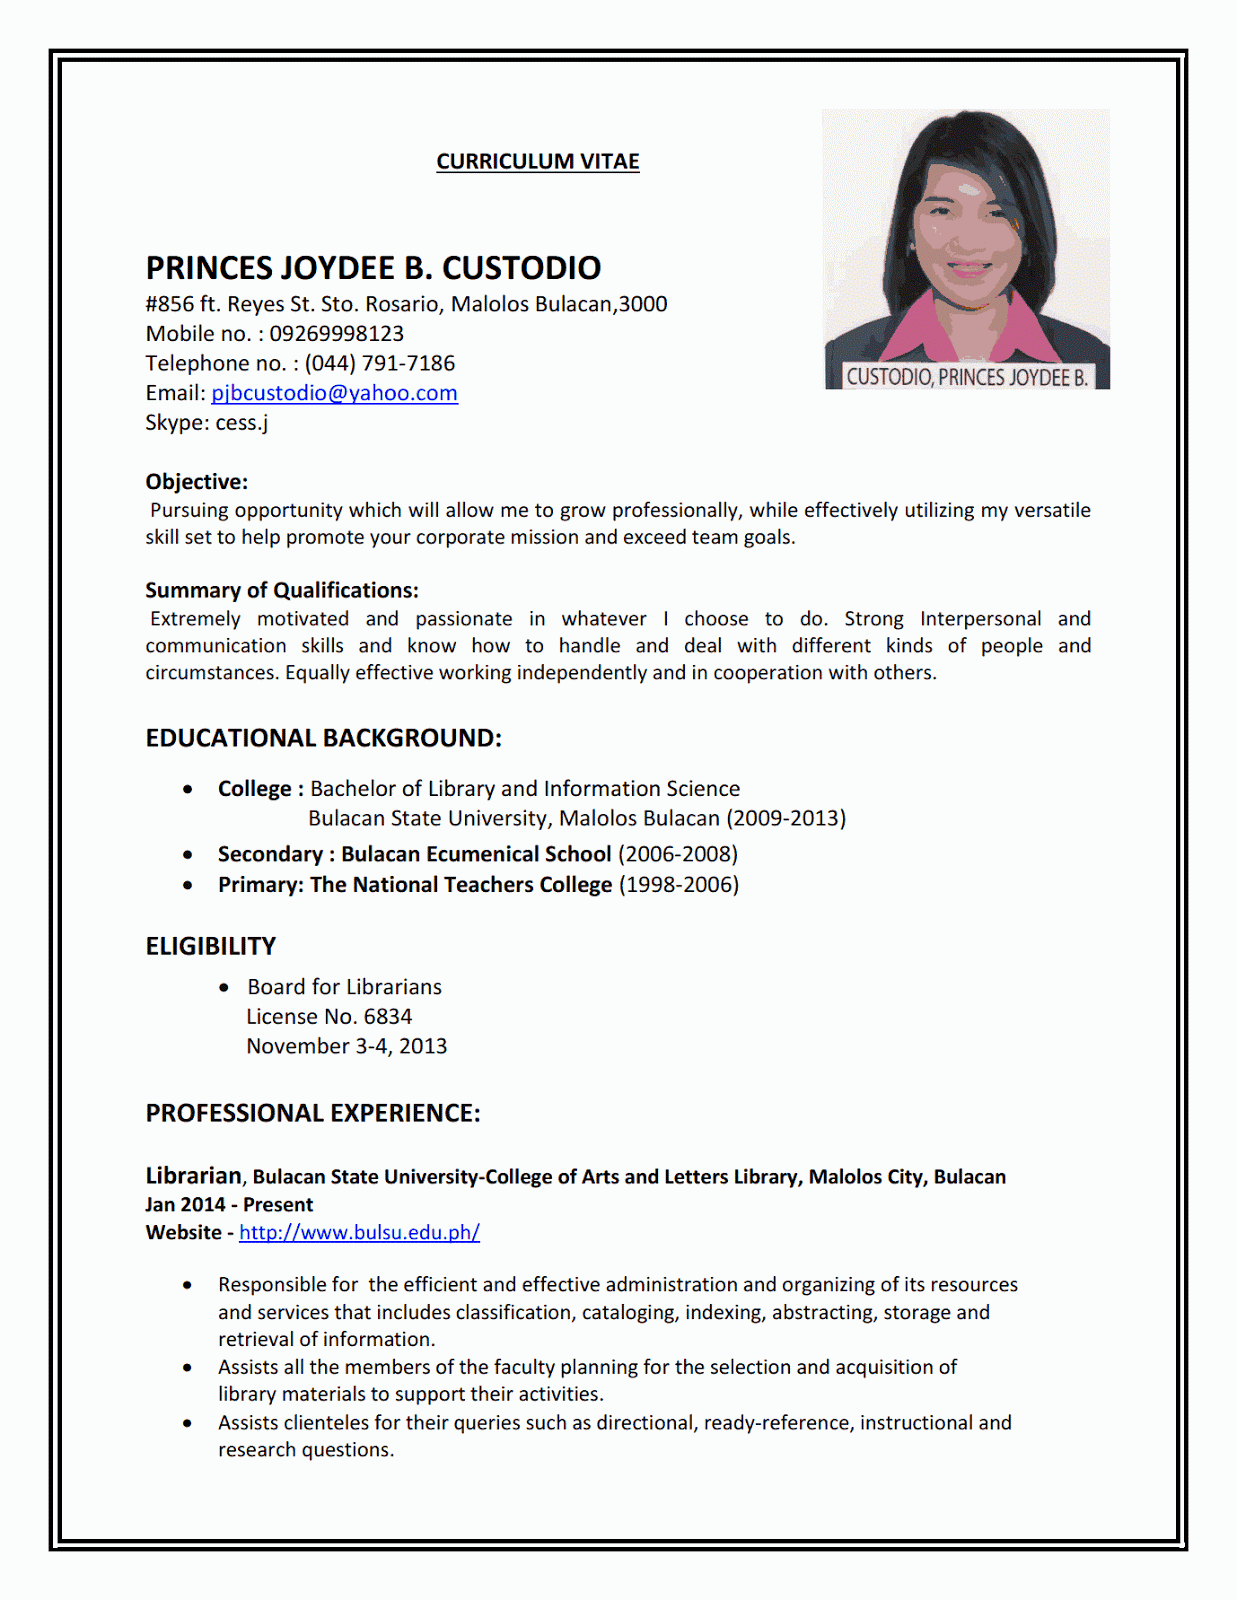 Cv template layout word Engineering CV template  engineer  manufacturing  resume  industry   construction